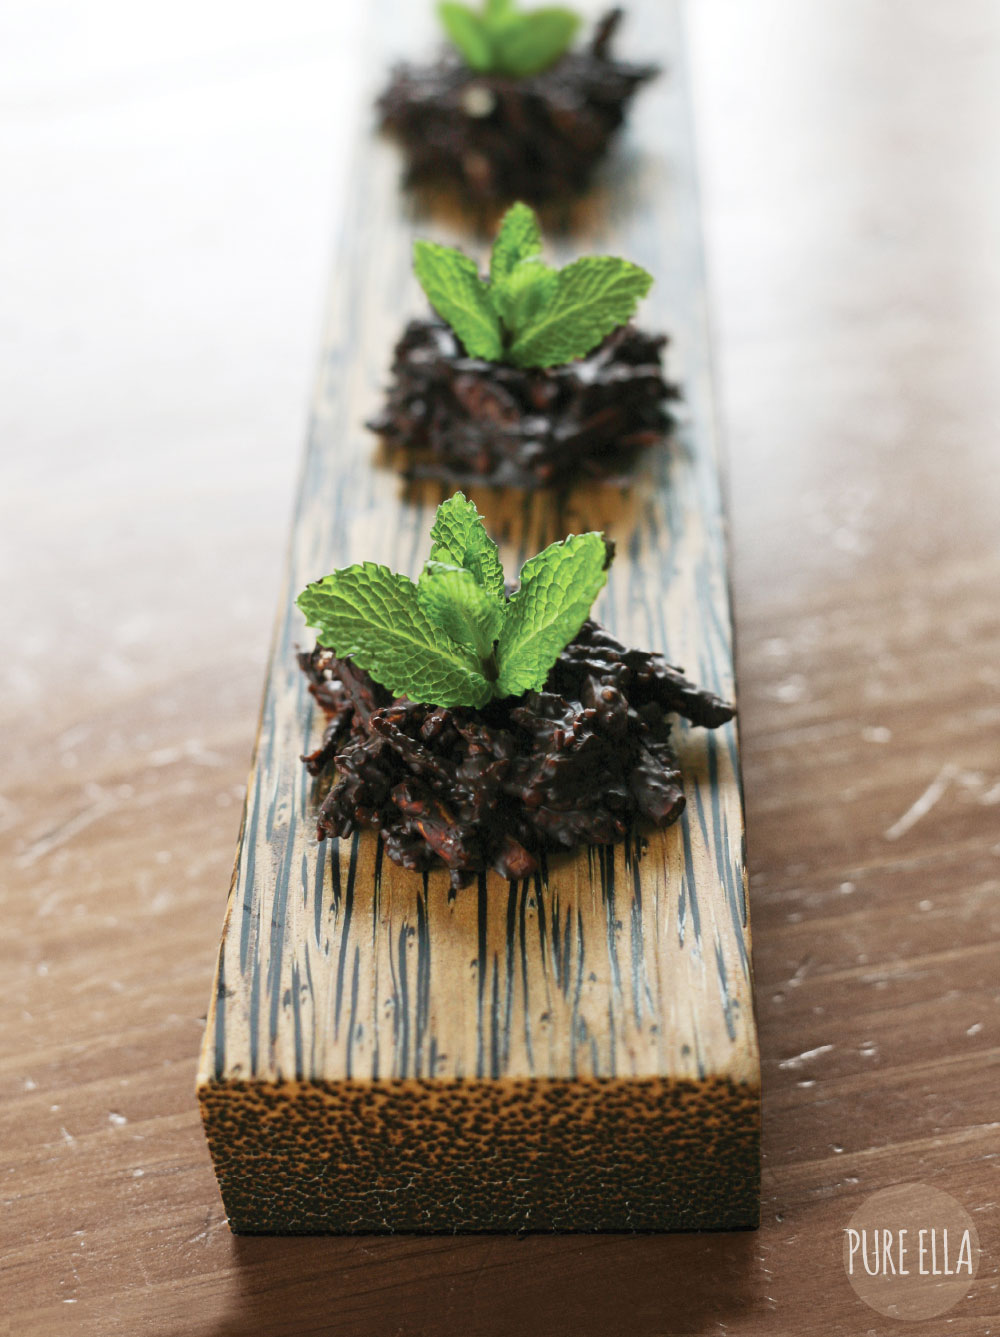 Pure-Ella-Sweet-Seedlings-with-chocolate-dirt8